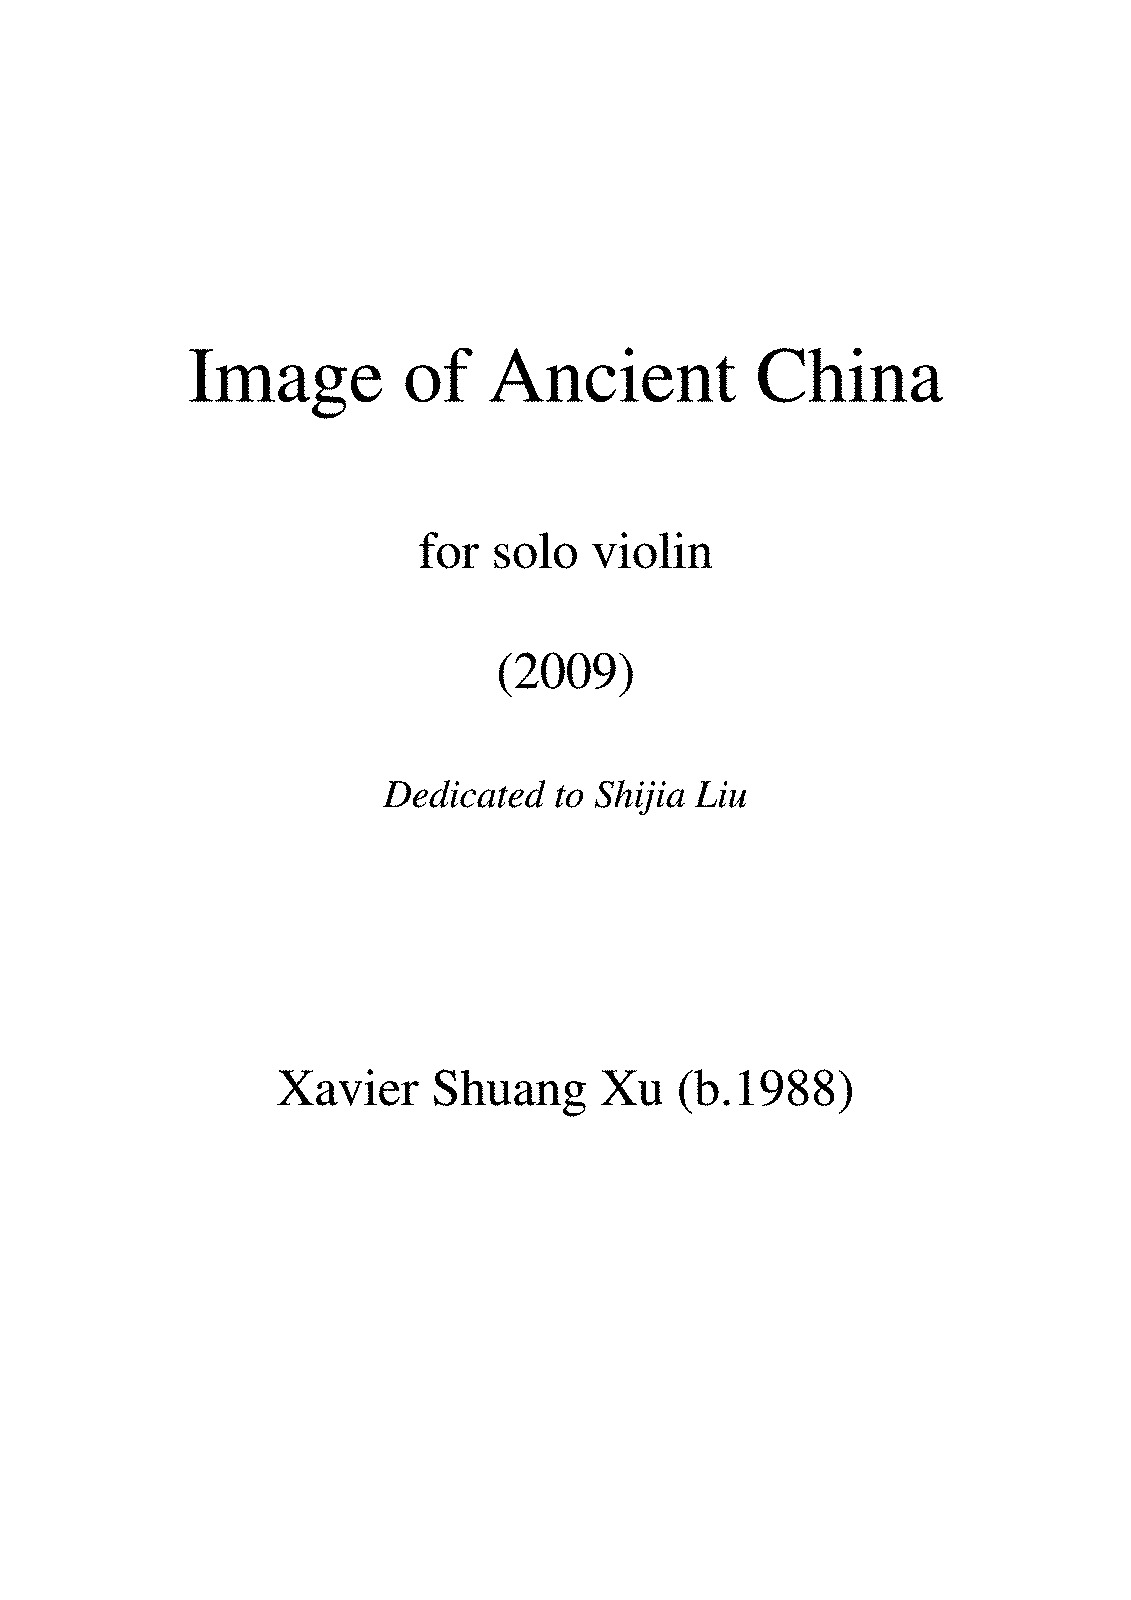 PMLP87542-Image of Ancient China(revised).pdf